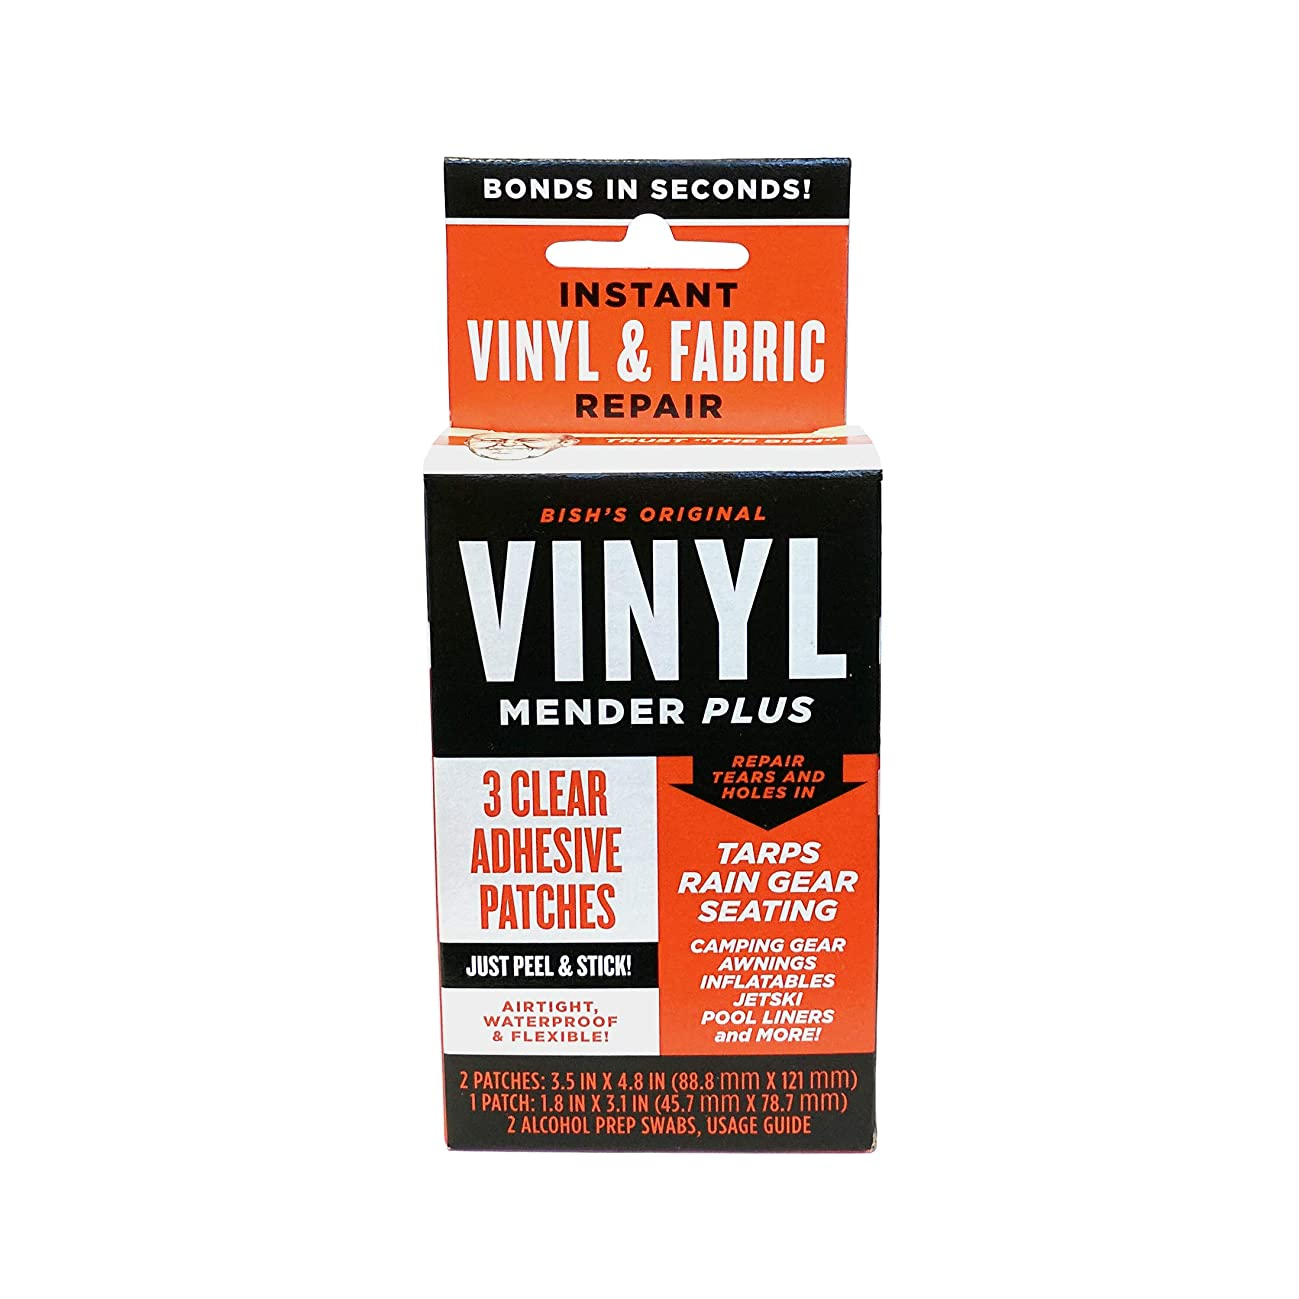 Tear Mender Vinyl Mender Clear Adhesive Patches, 40 Sq. Inches, BRT-1 (Packaging may vary)